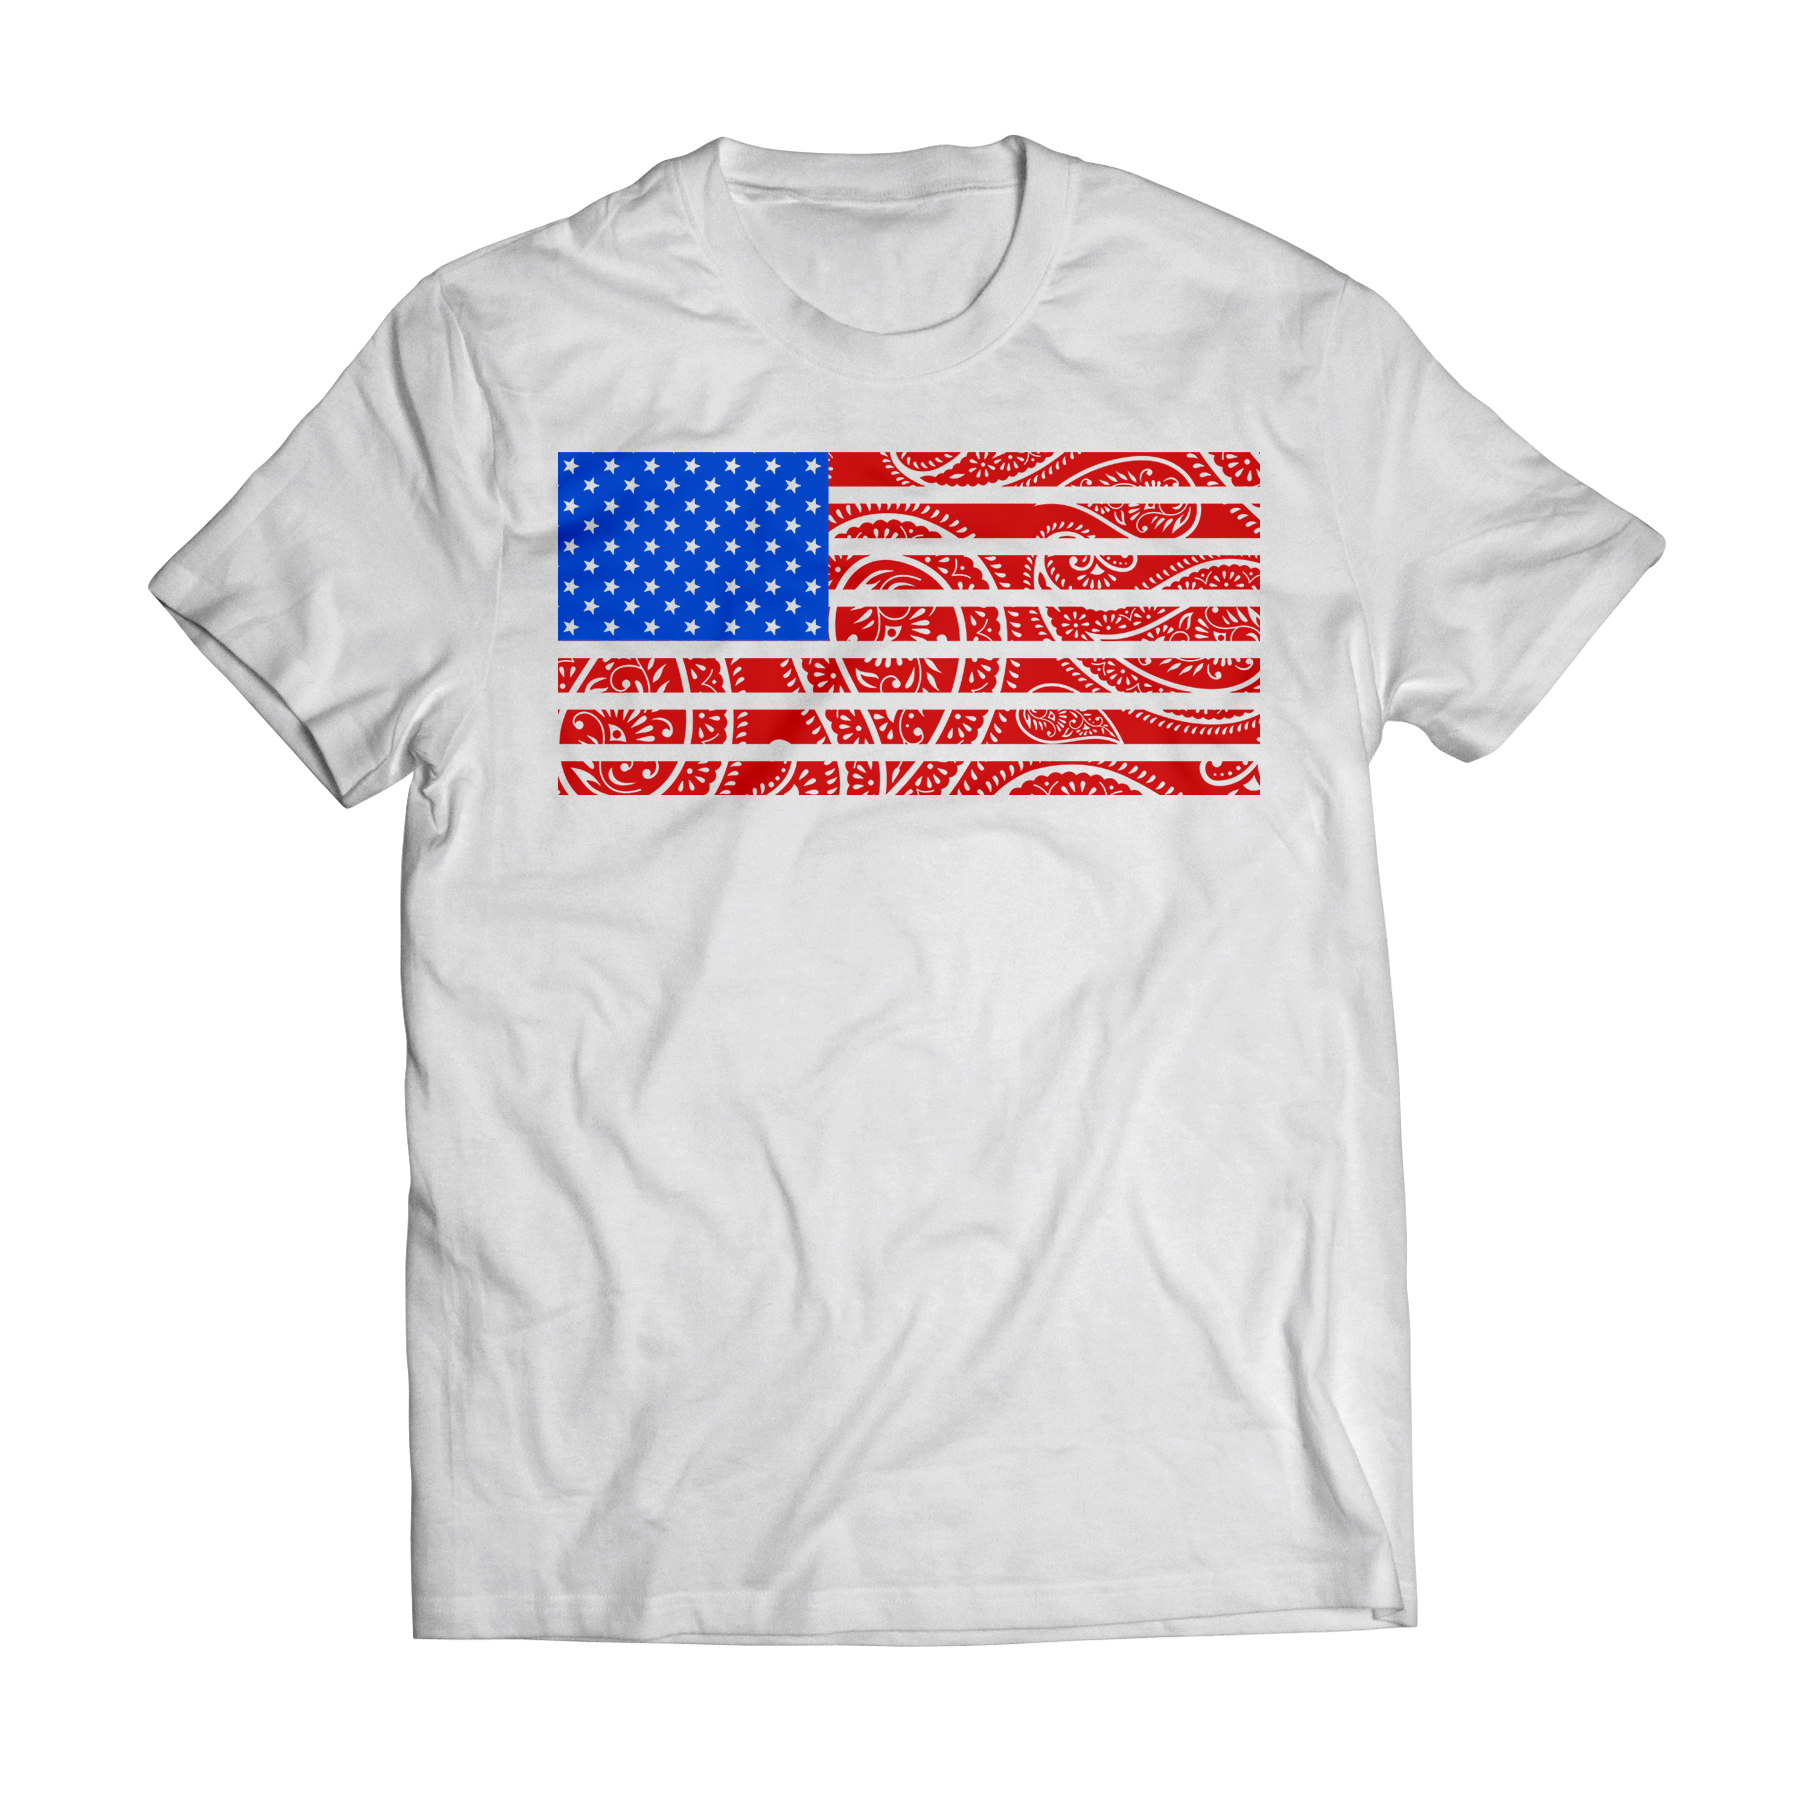 T shirt design queens ny - Big Bang Apparel American Flag Paisley T Shirt